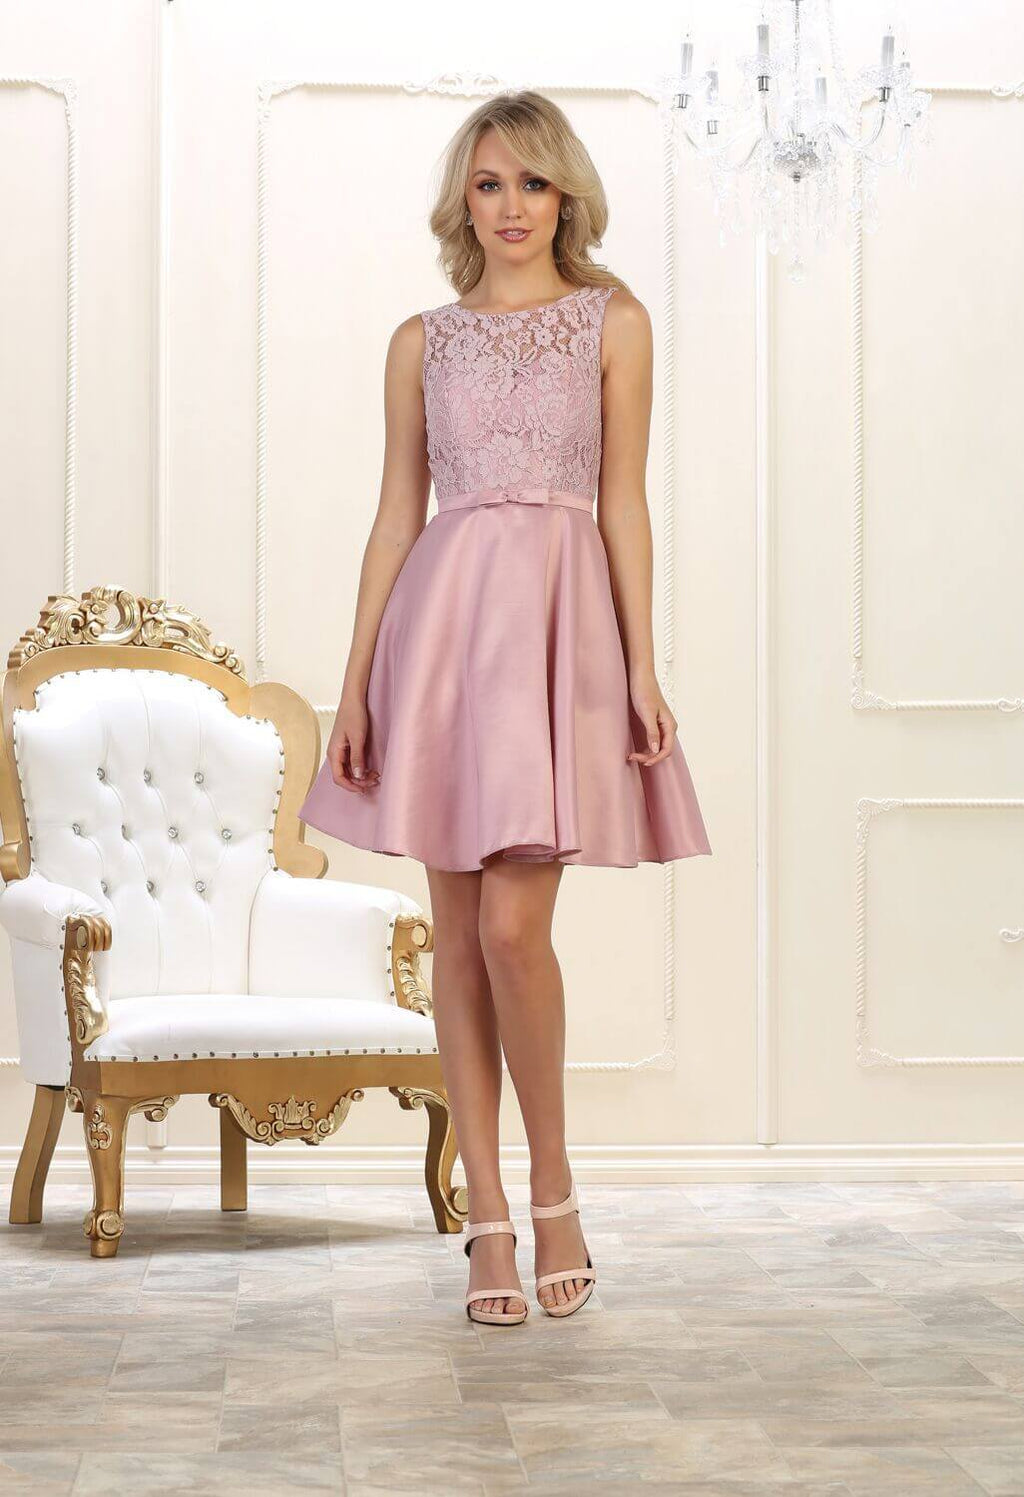 Short Prom Dress Formal Graduation Cocktail - The Dress Outlet Mauve May Queen